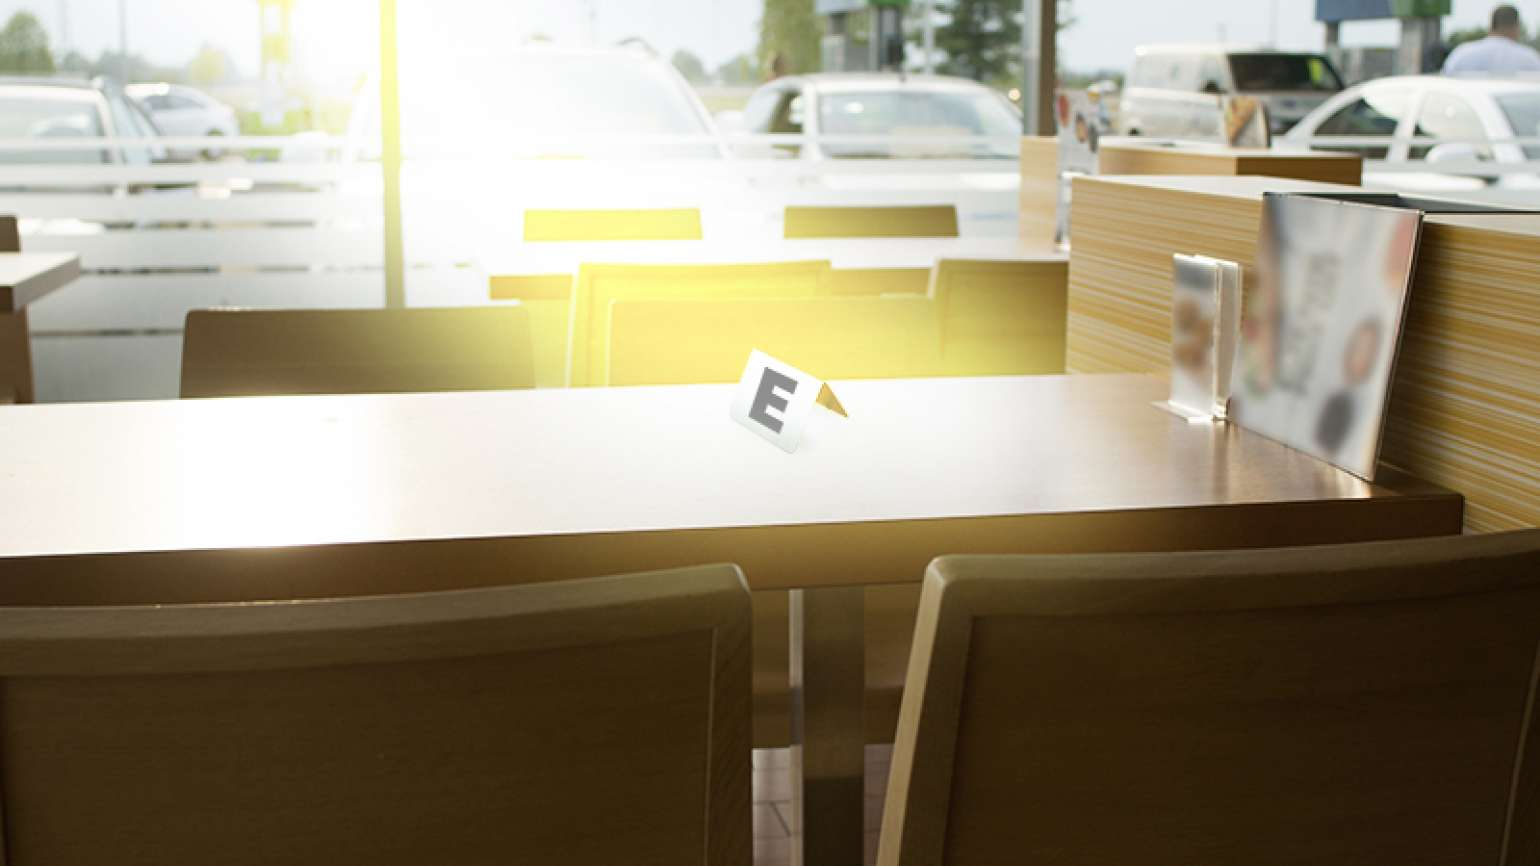 A table with a sign on it, lit by sunlight.